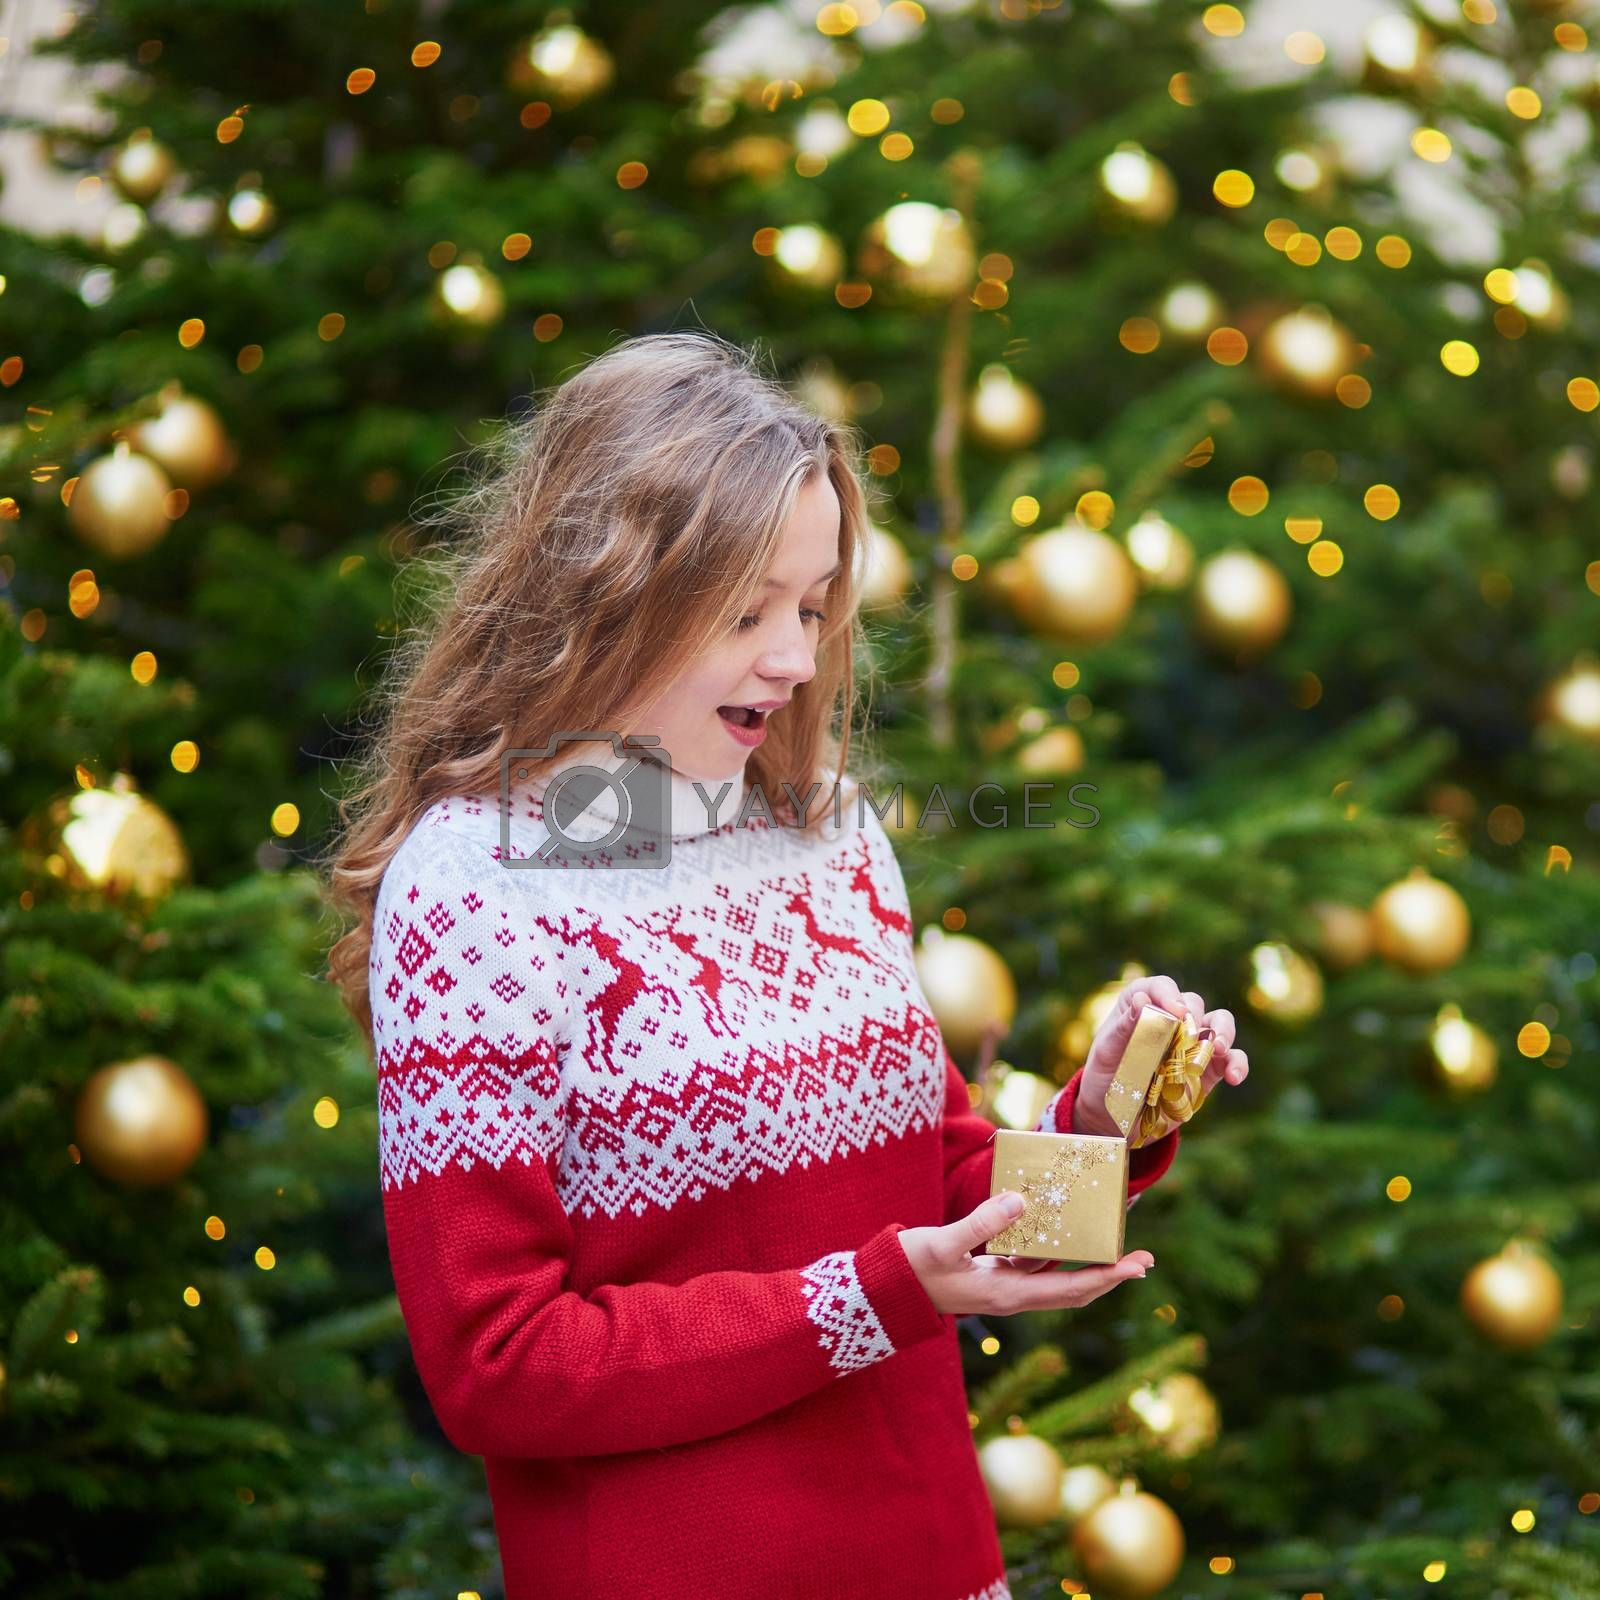 Cheerful girl with Christmas present near decorated Christmas tree